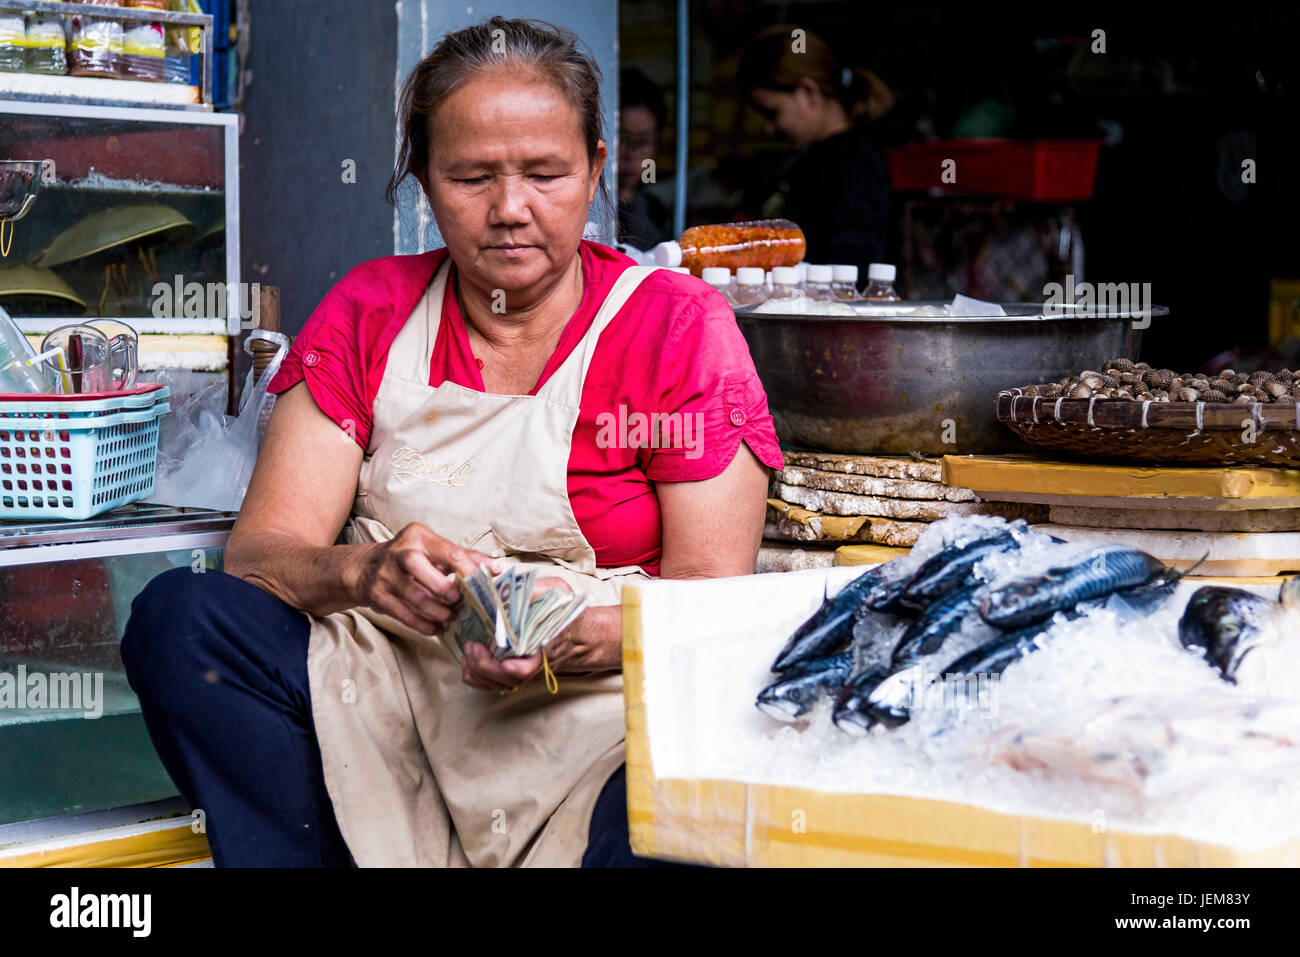 Phnom Penh, Cambodia - December 30, 2016: An unidentified woman check the day's earnings at the Central Market - Stock Image